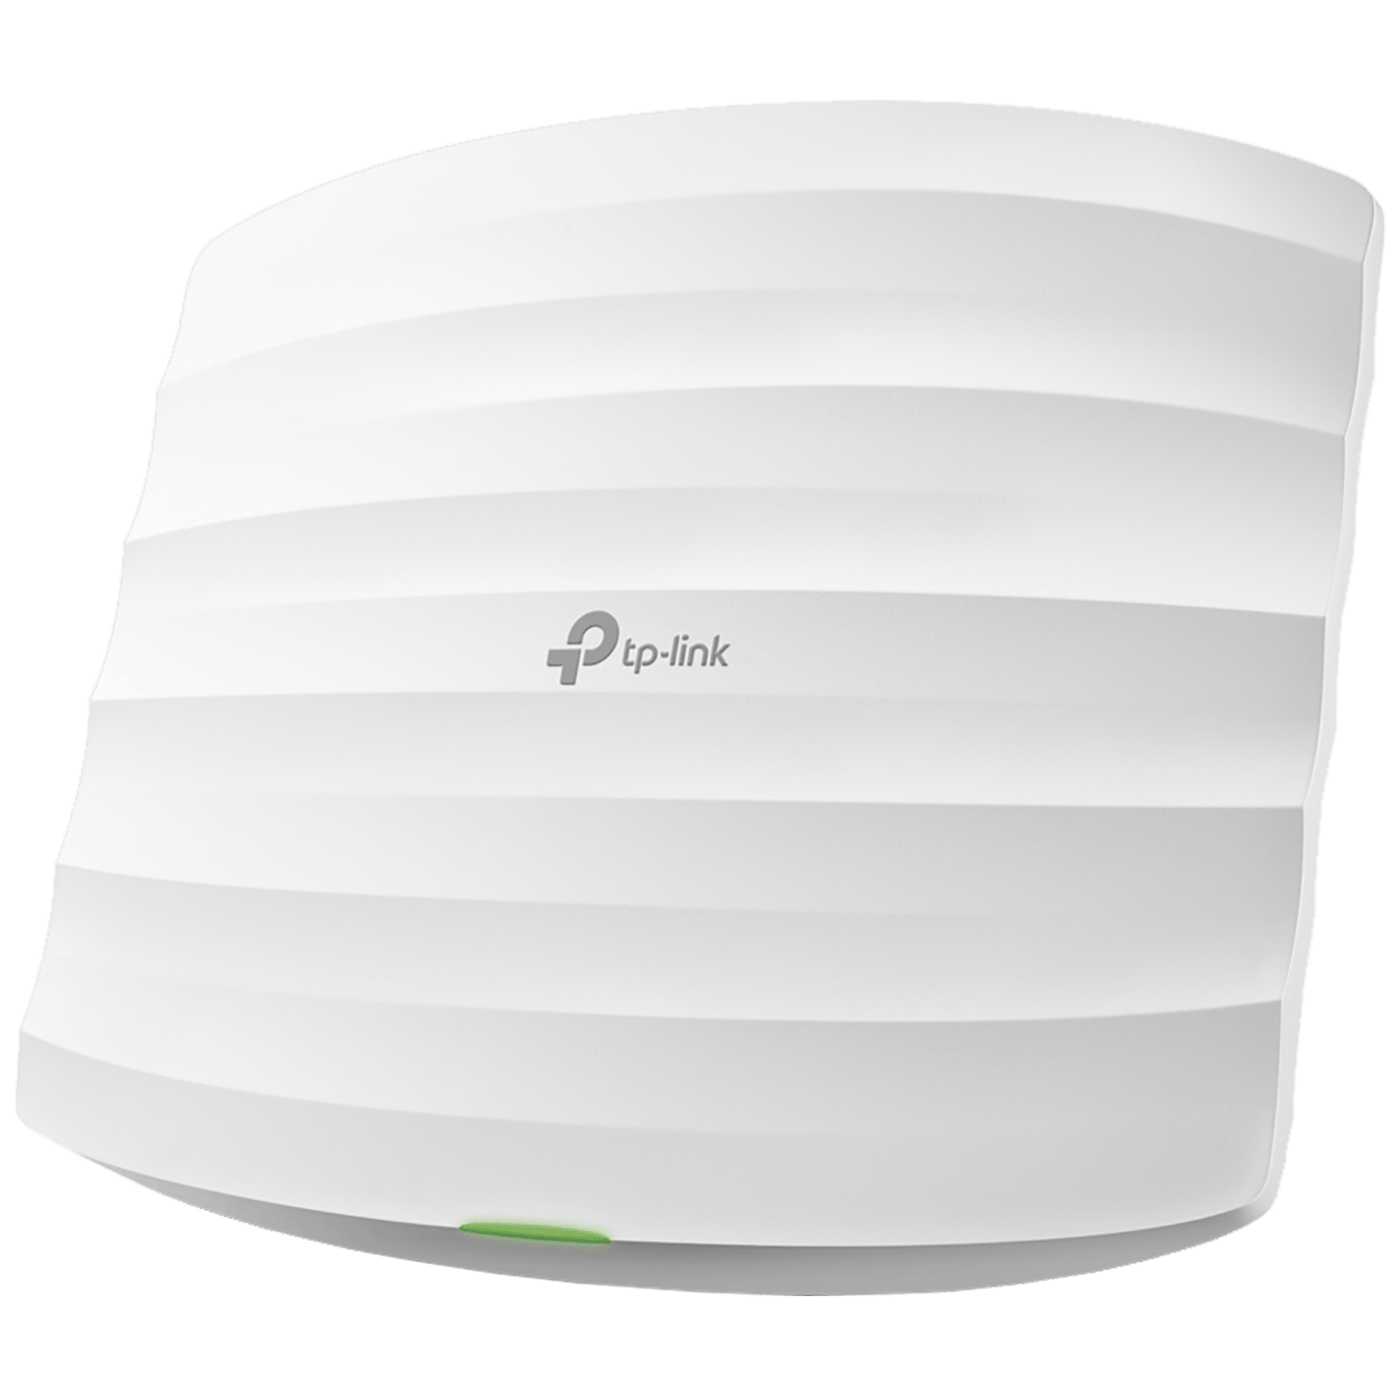 Wireless N Access Point, 300Mbps, 2.4GHz